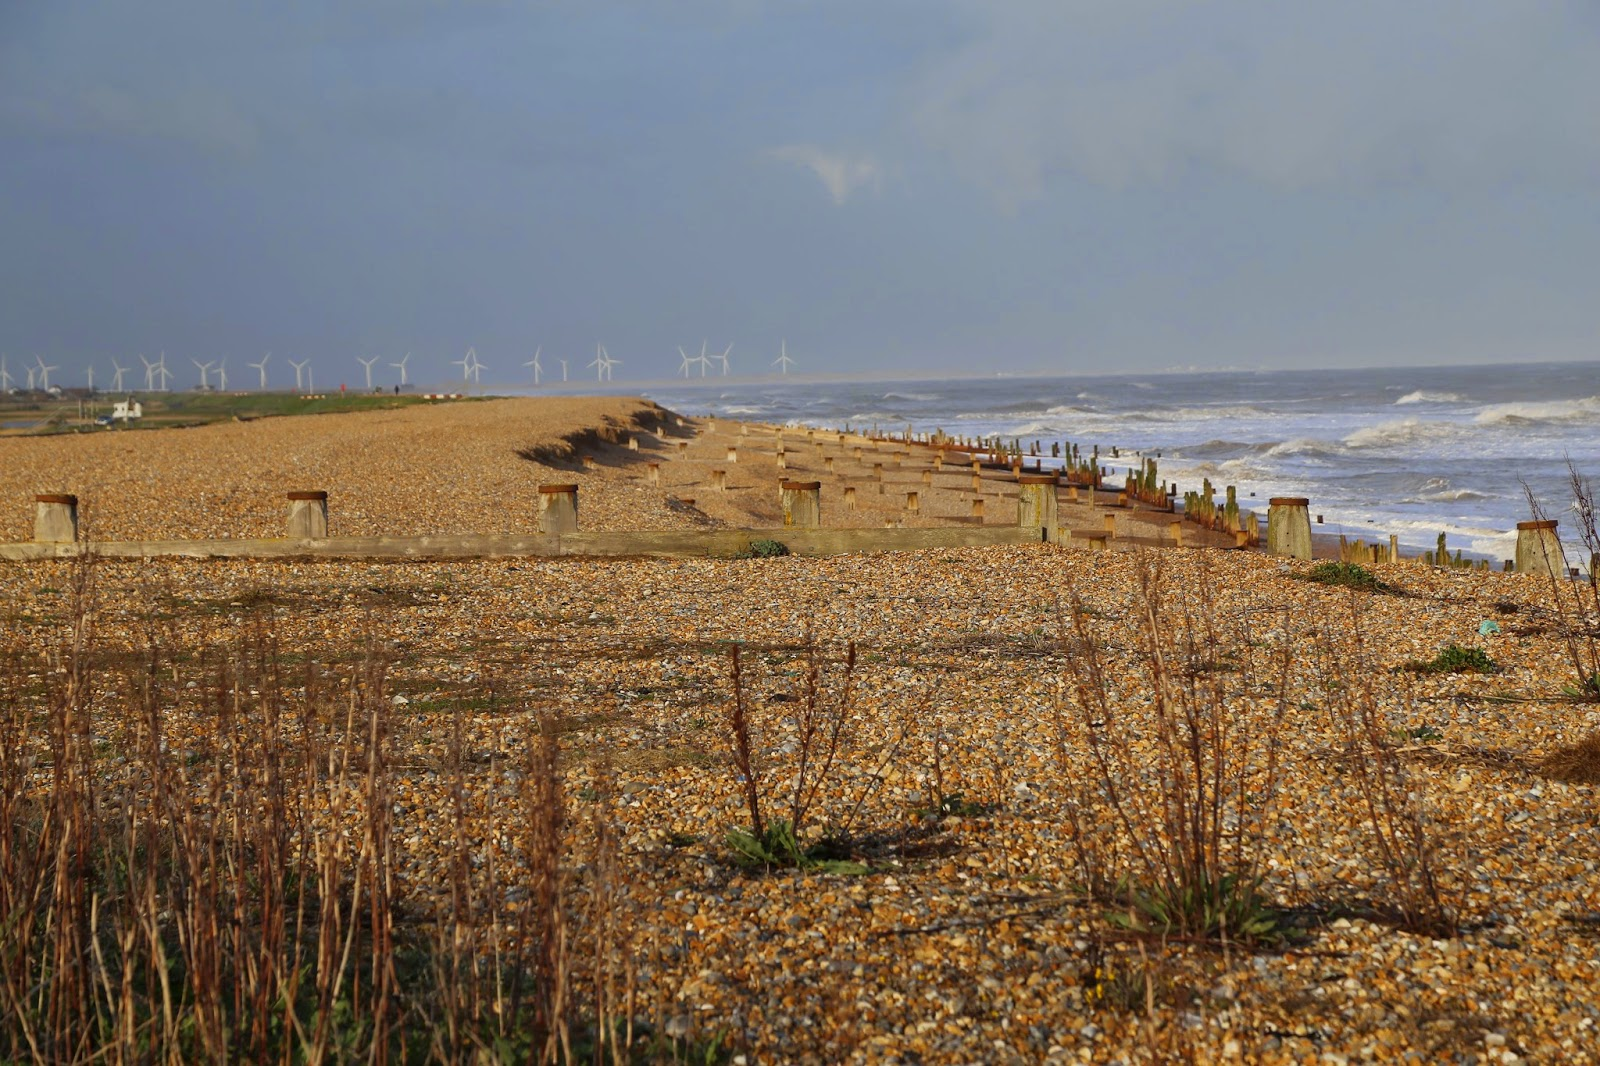 Winchelsea beach, UK